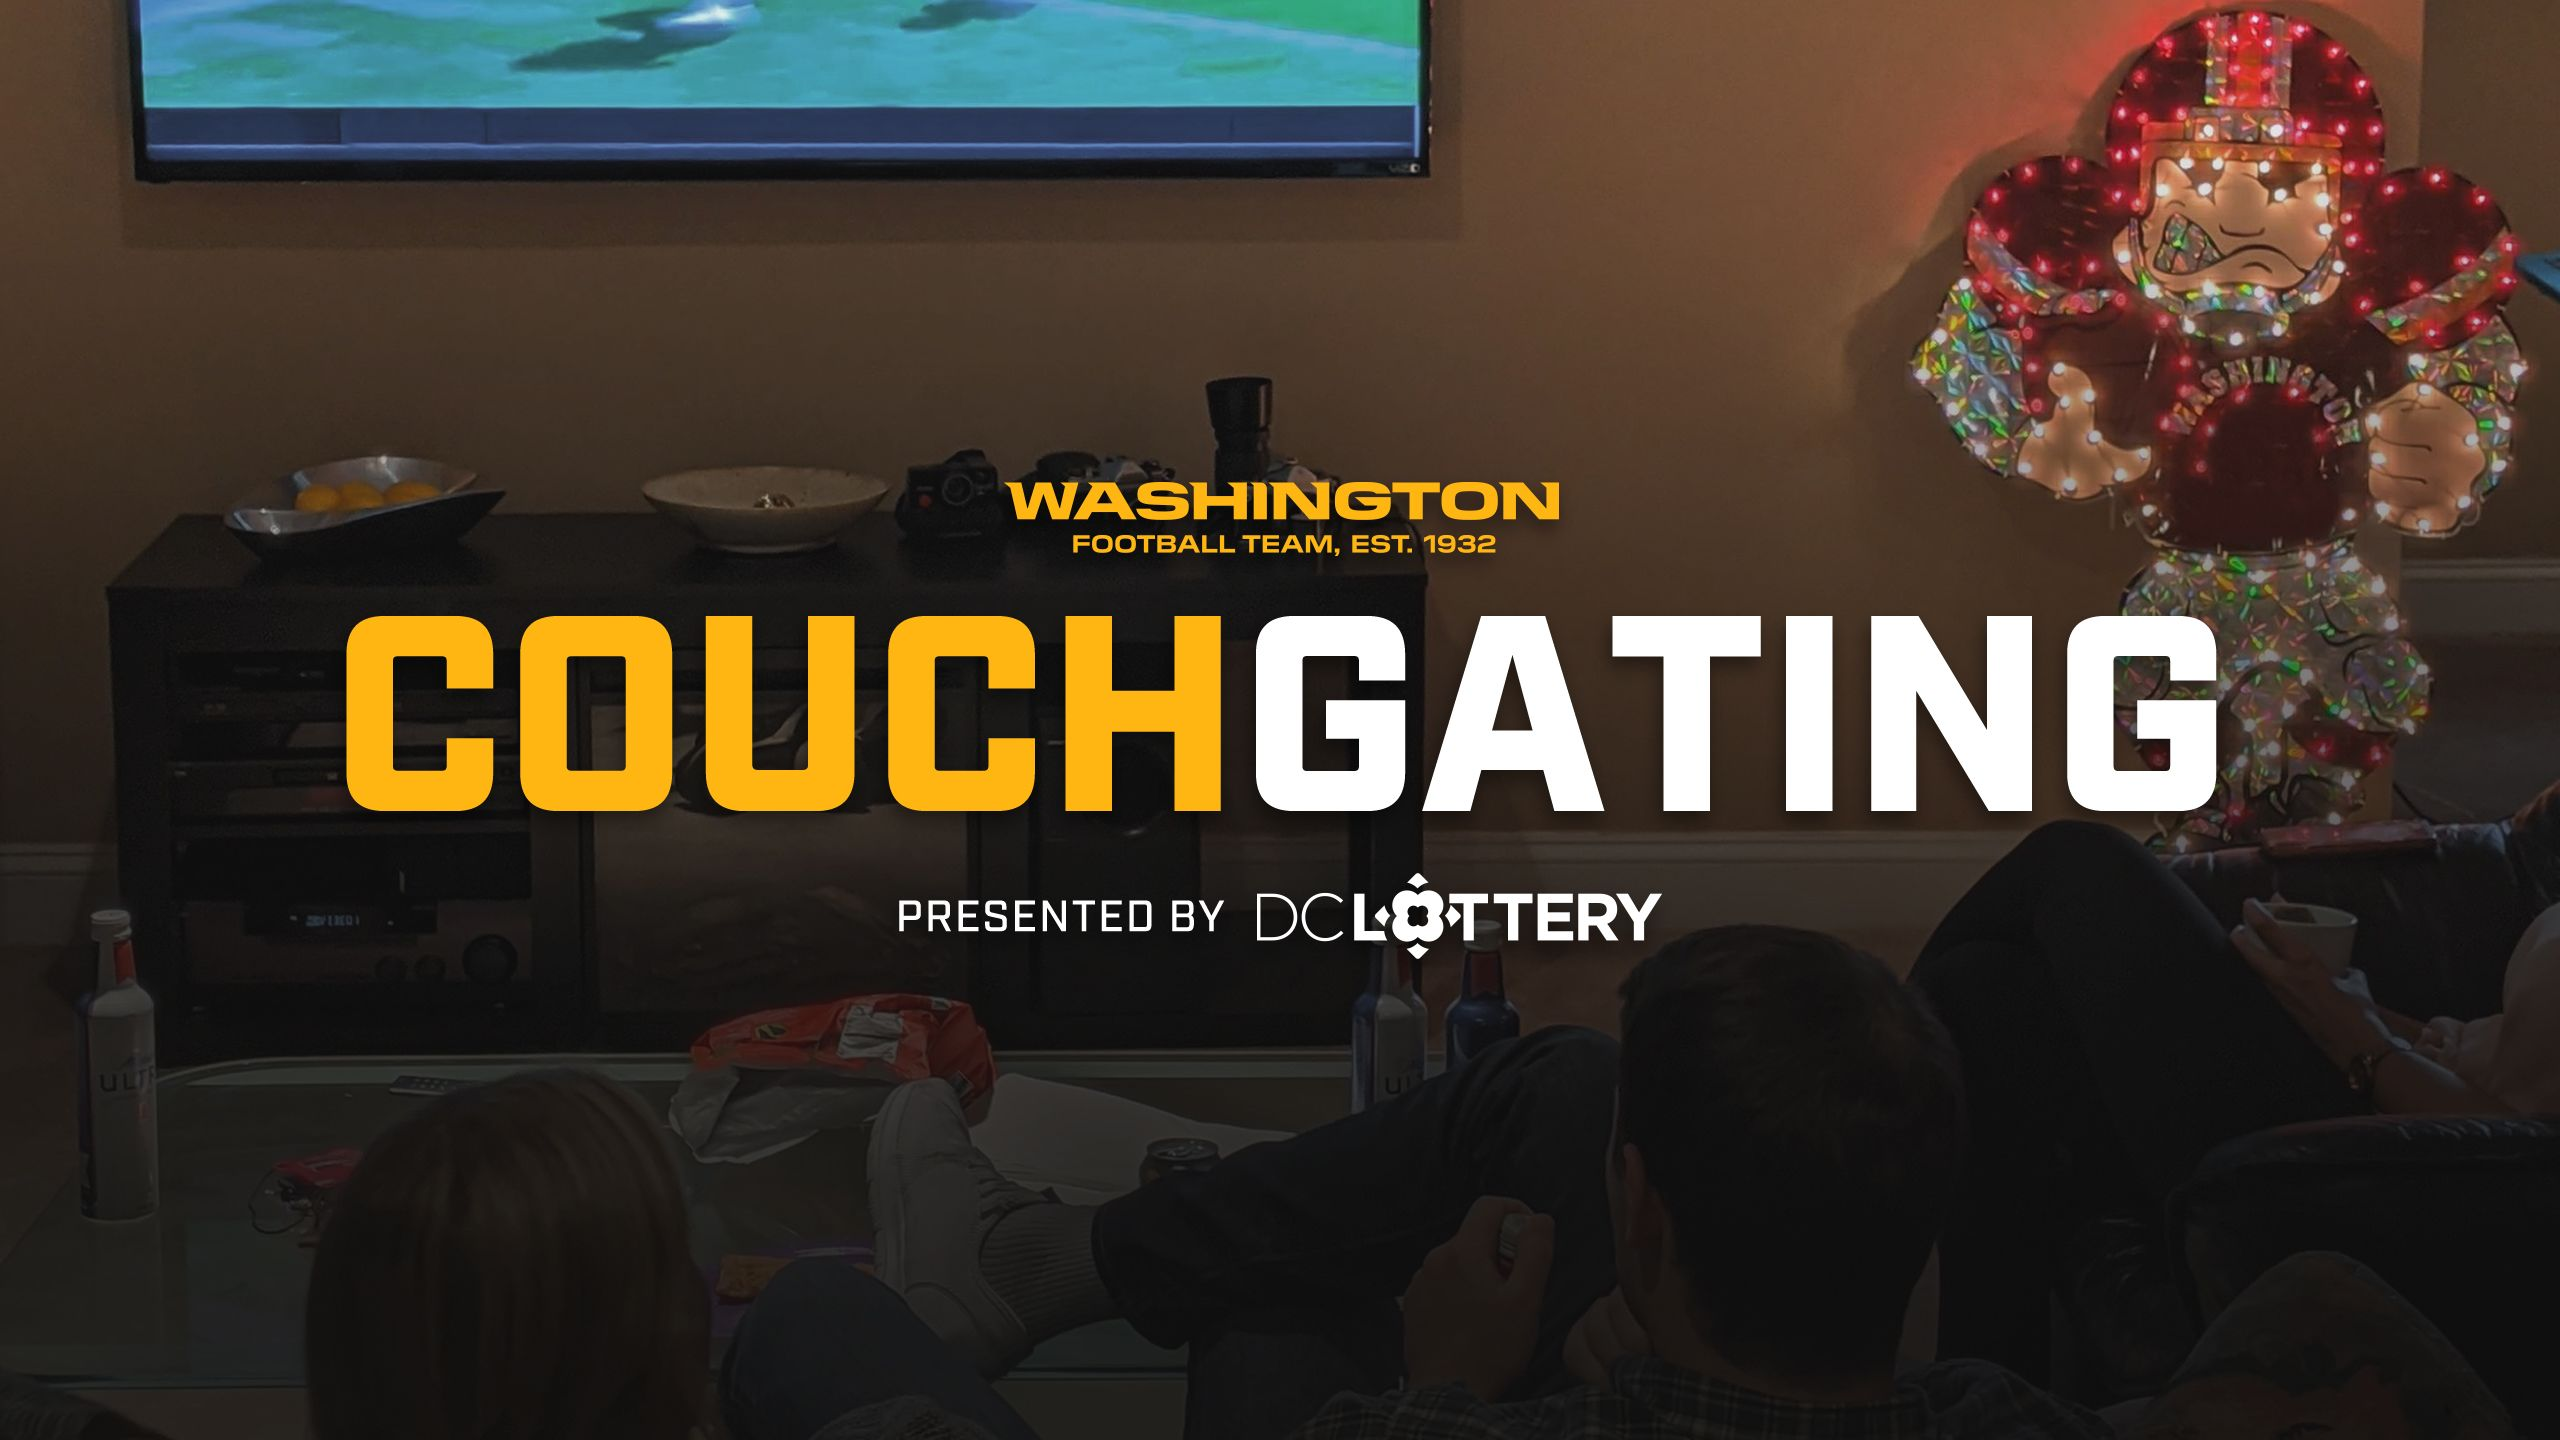 COUCHGATING SWEEPSTAKES